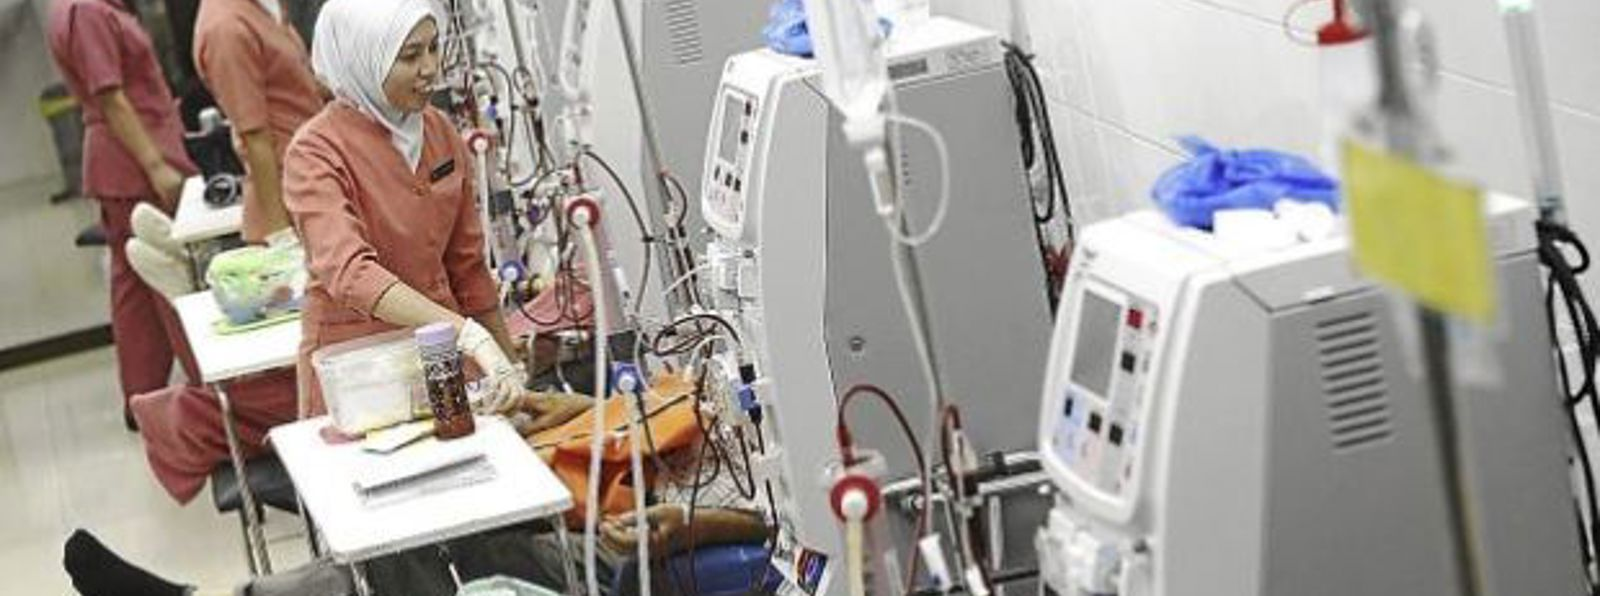 Haemodialysis services to be expanded across rural communities in Malaysia